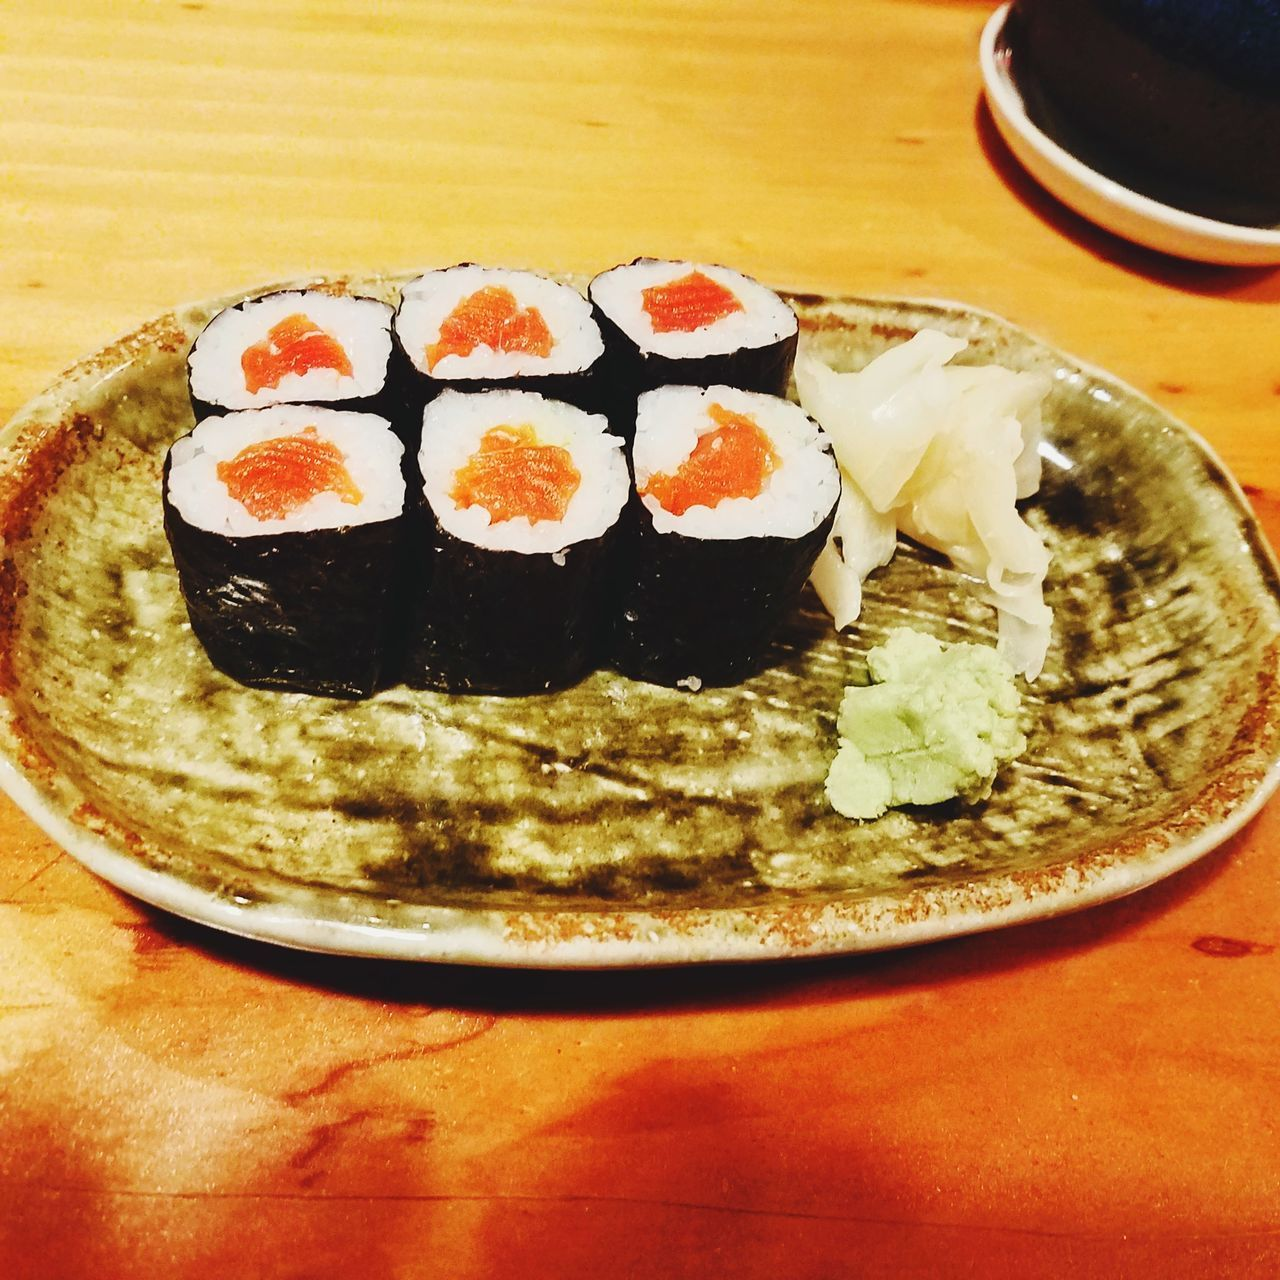 Food And Drink Still Life Indoors  Ready-to-eat Table Plate Japanese Food Sushi